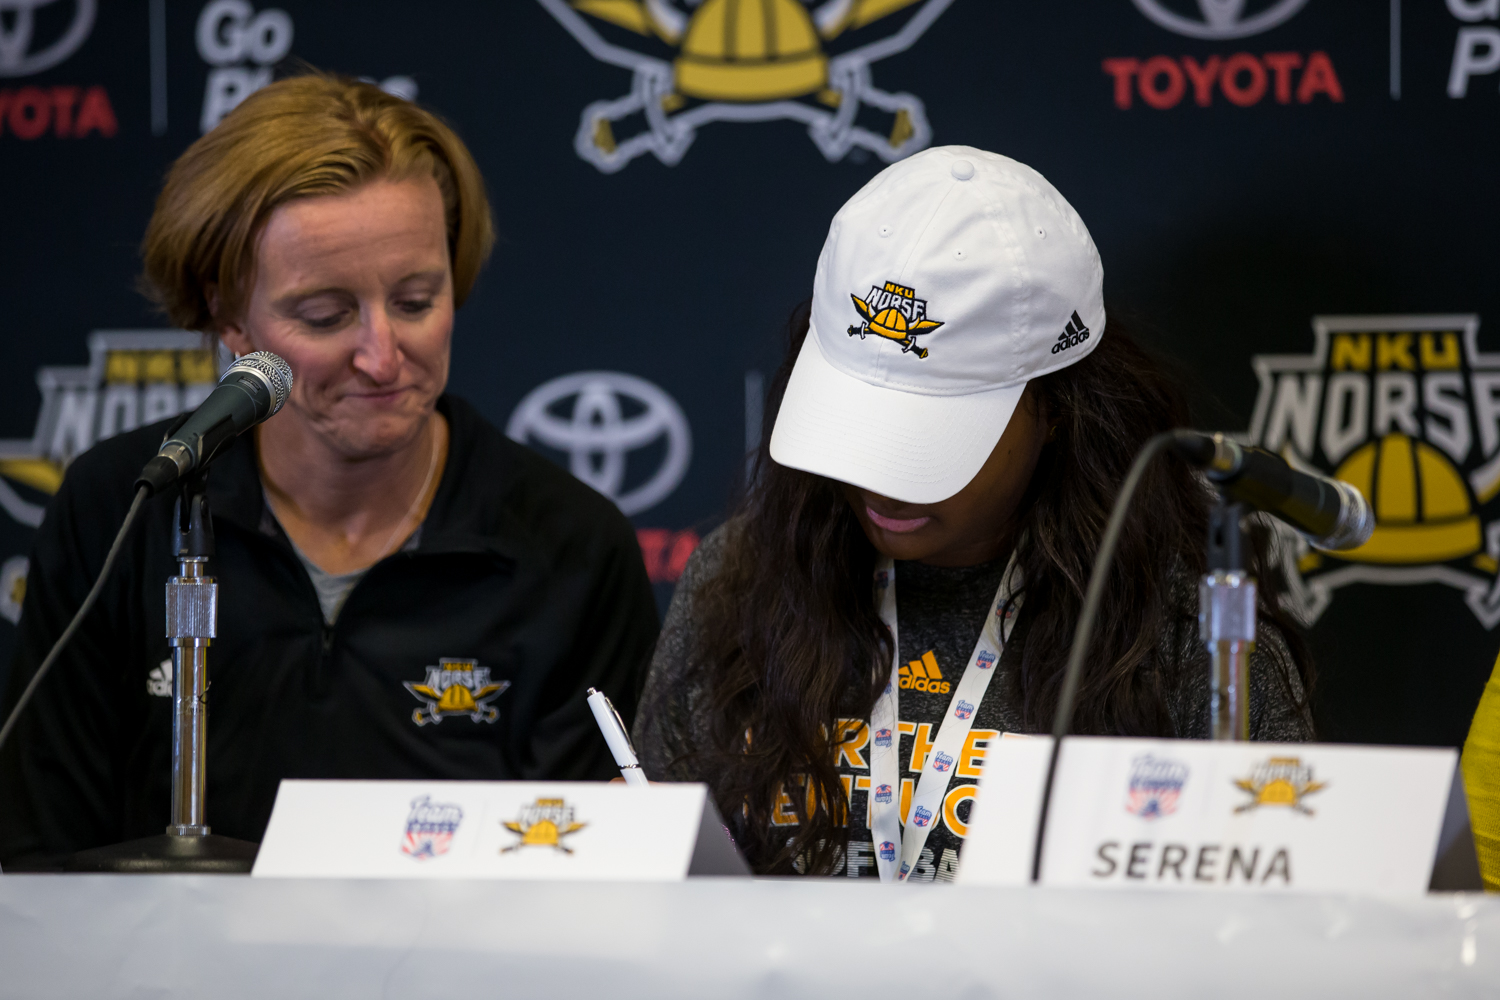 Head+Coach+Kathryn+Gleason+watches+as+Destiny+Owen%2C+a+member+from+team+IMPACT%2C+signs+to+become+a+member+of+the+NKU+softball+team.